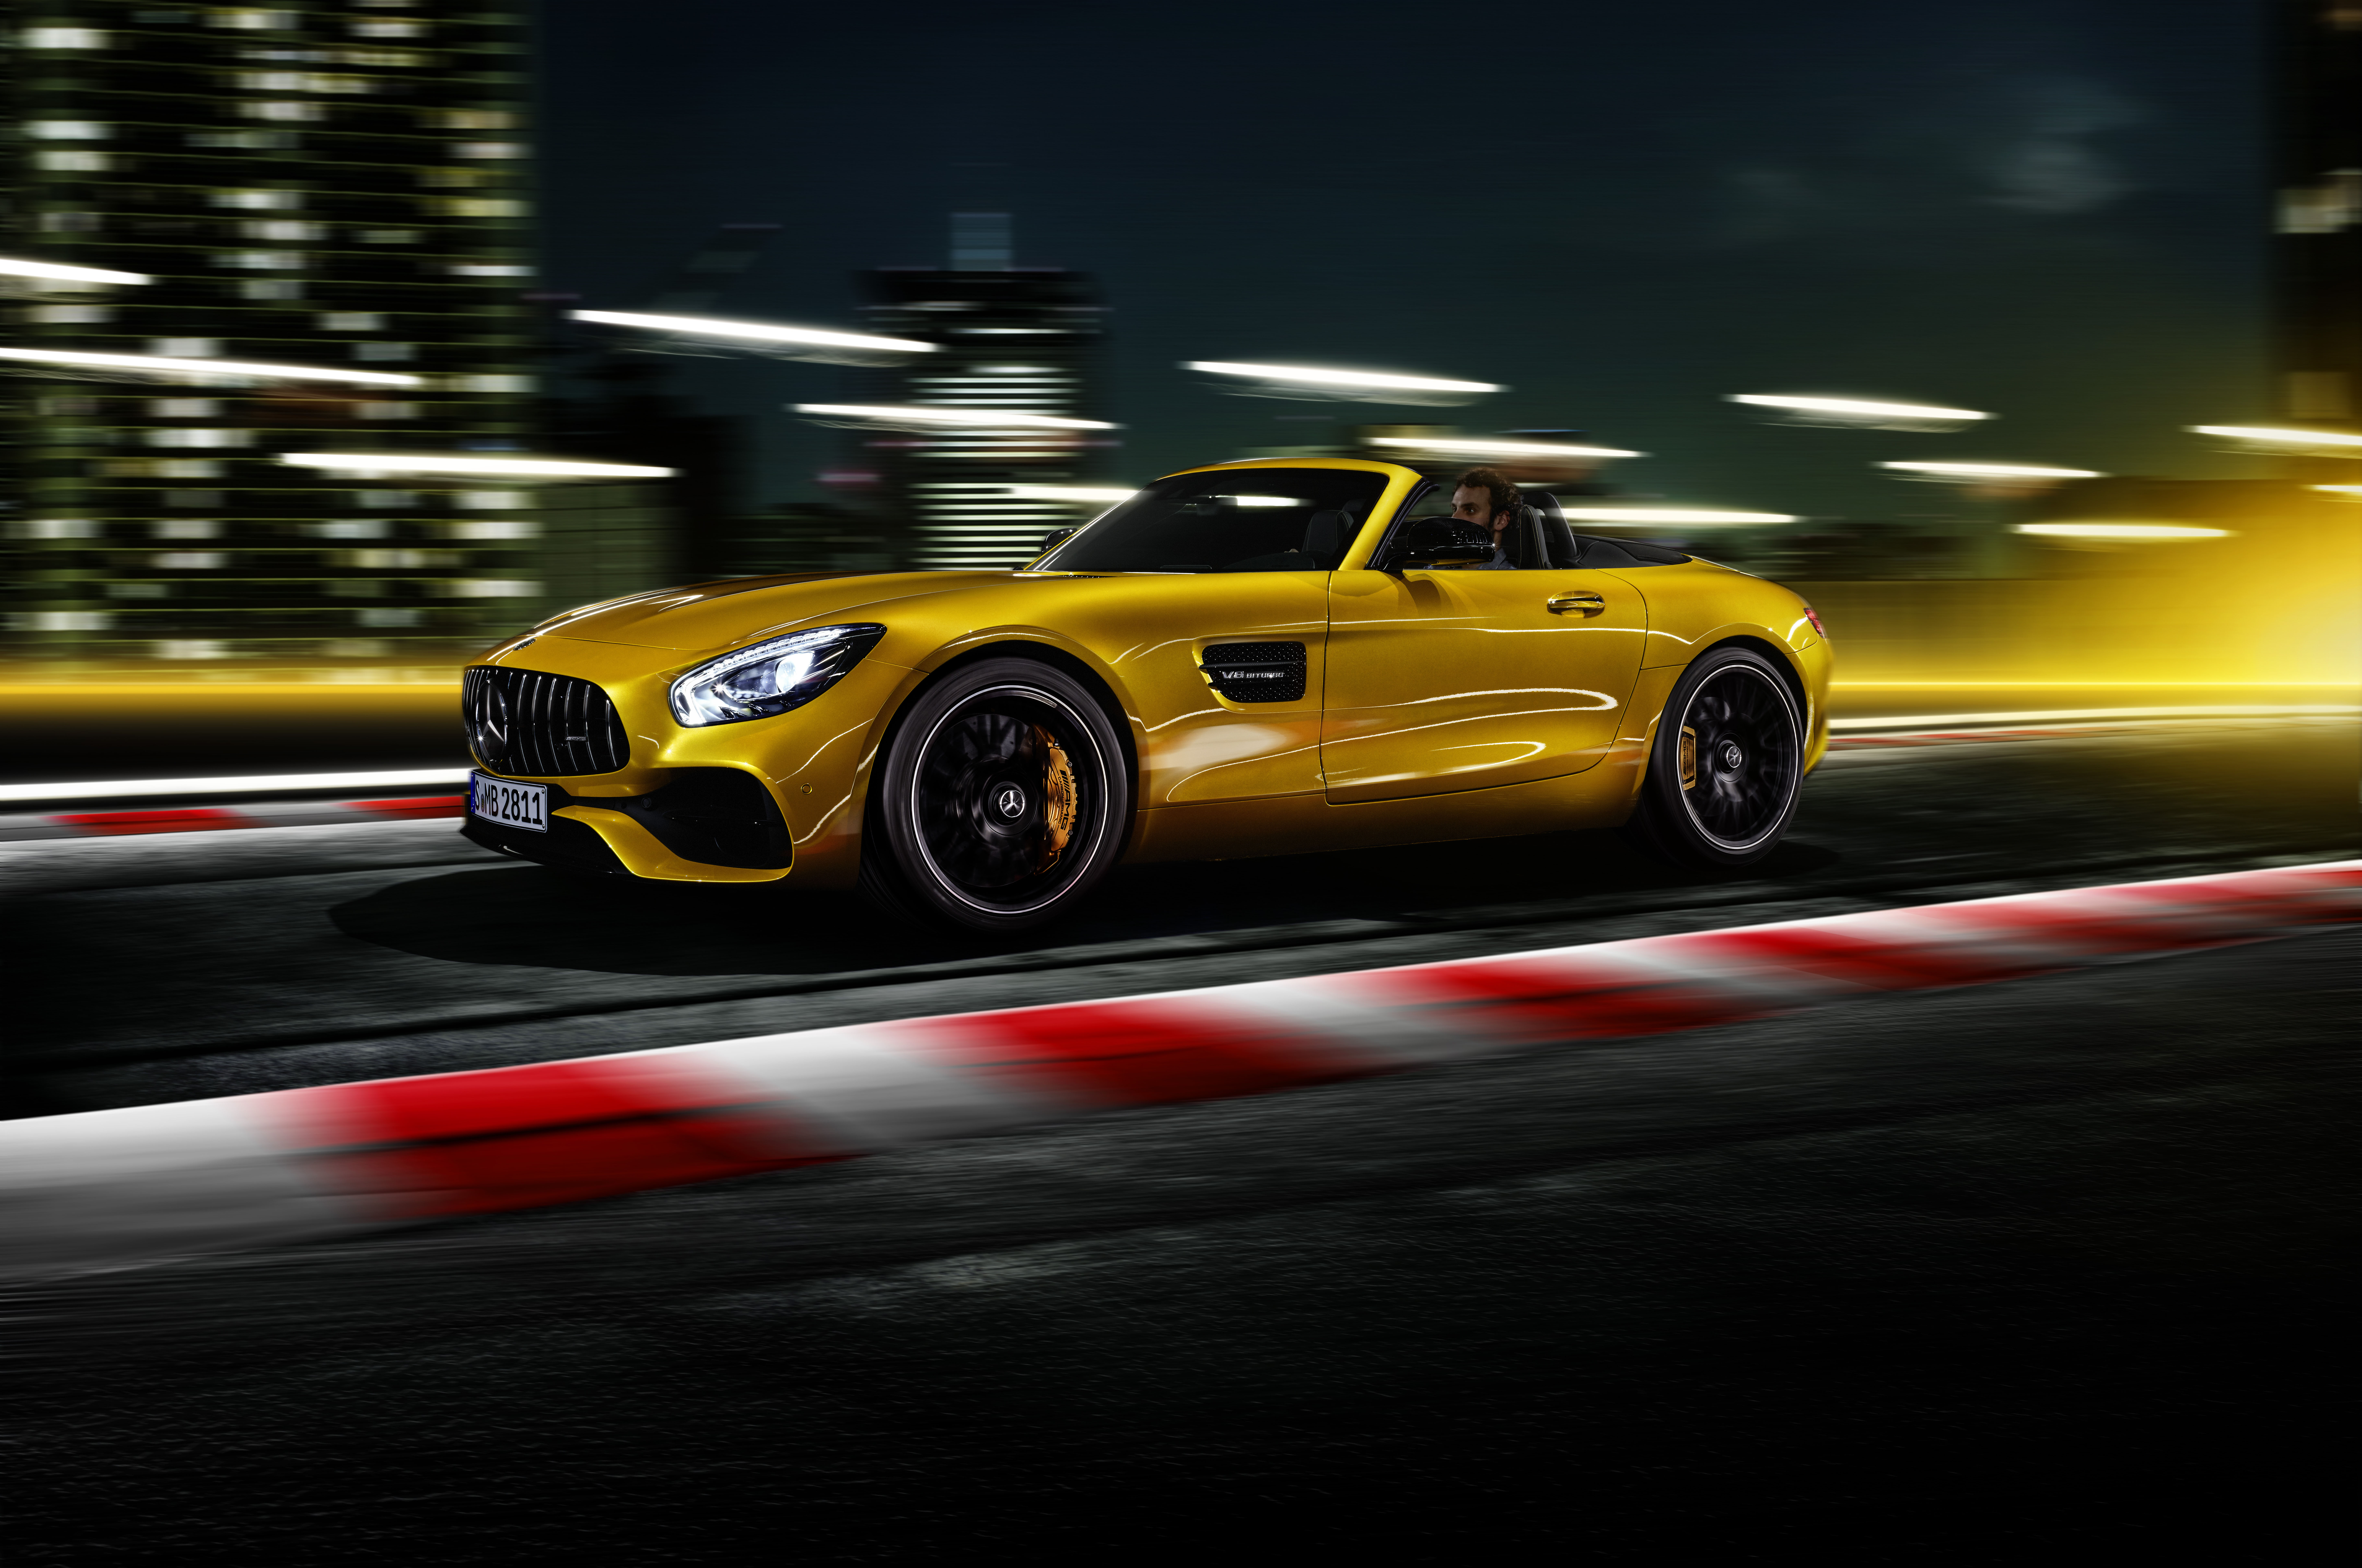 515bhp Mercedes-AMG GT S Roadster arrives